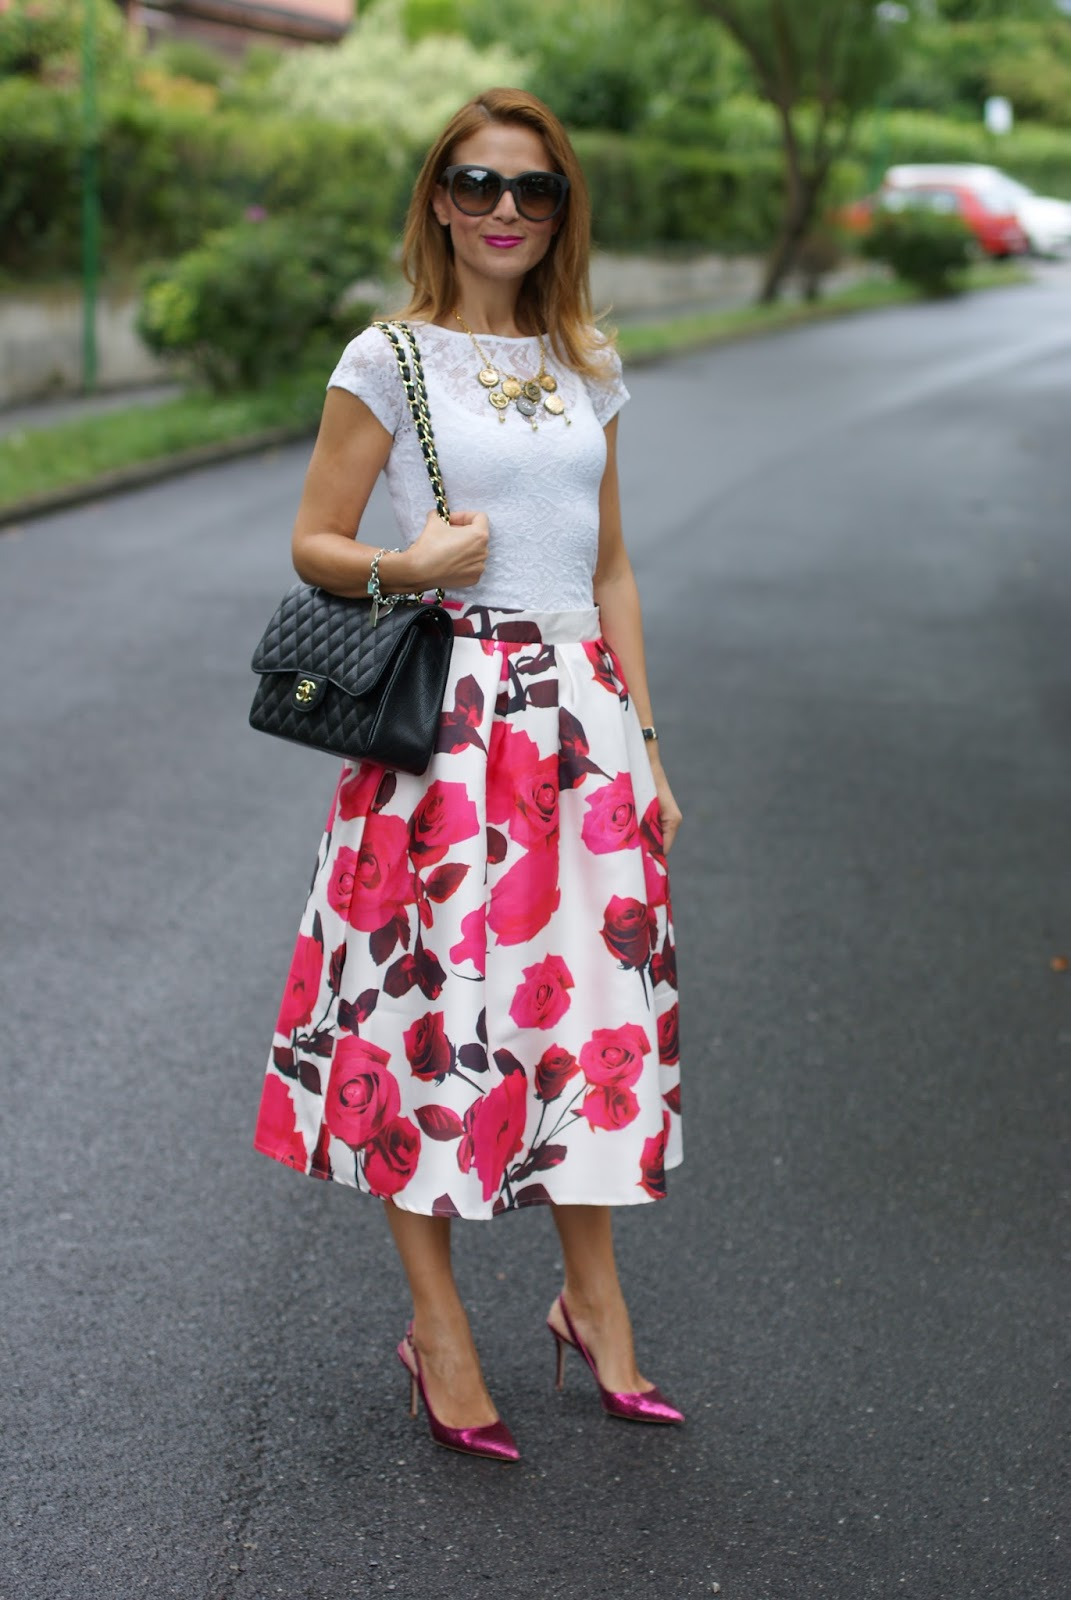 rose print midi skirt and Chanel 2.55 caviar bag on Fashion and Cookies fashion blogger from Italy